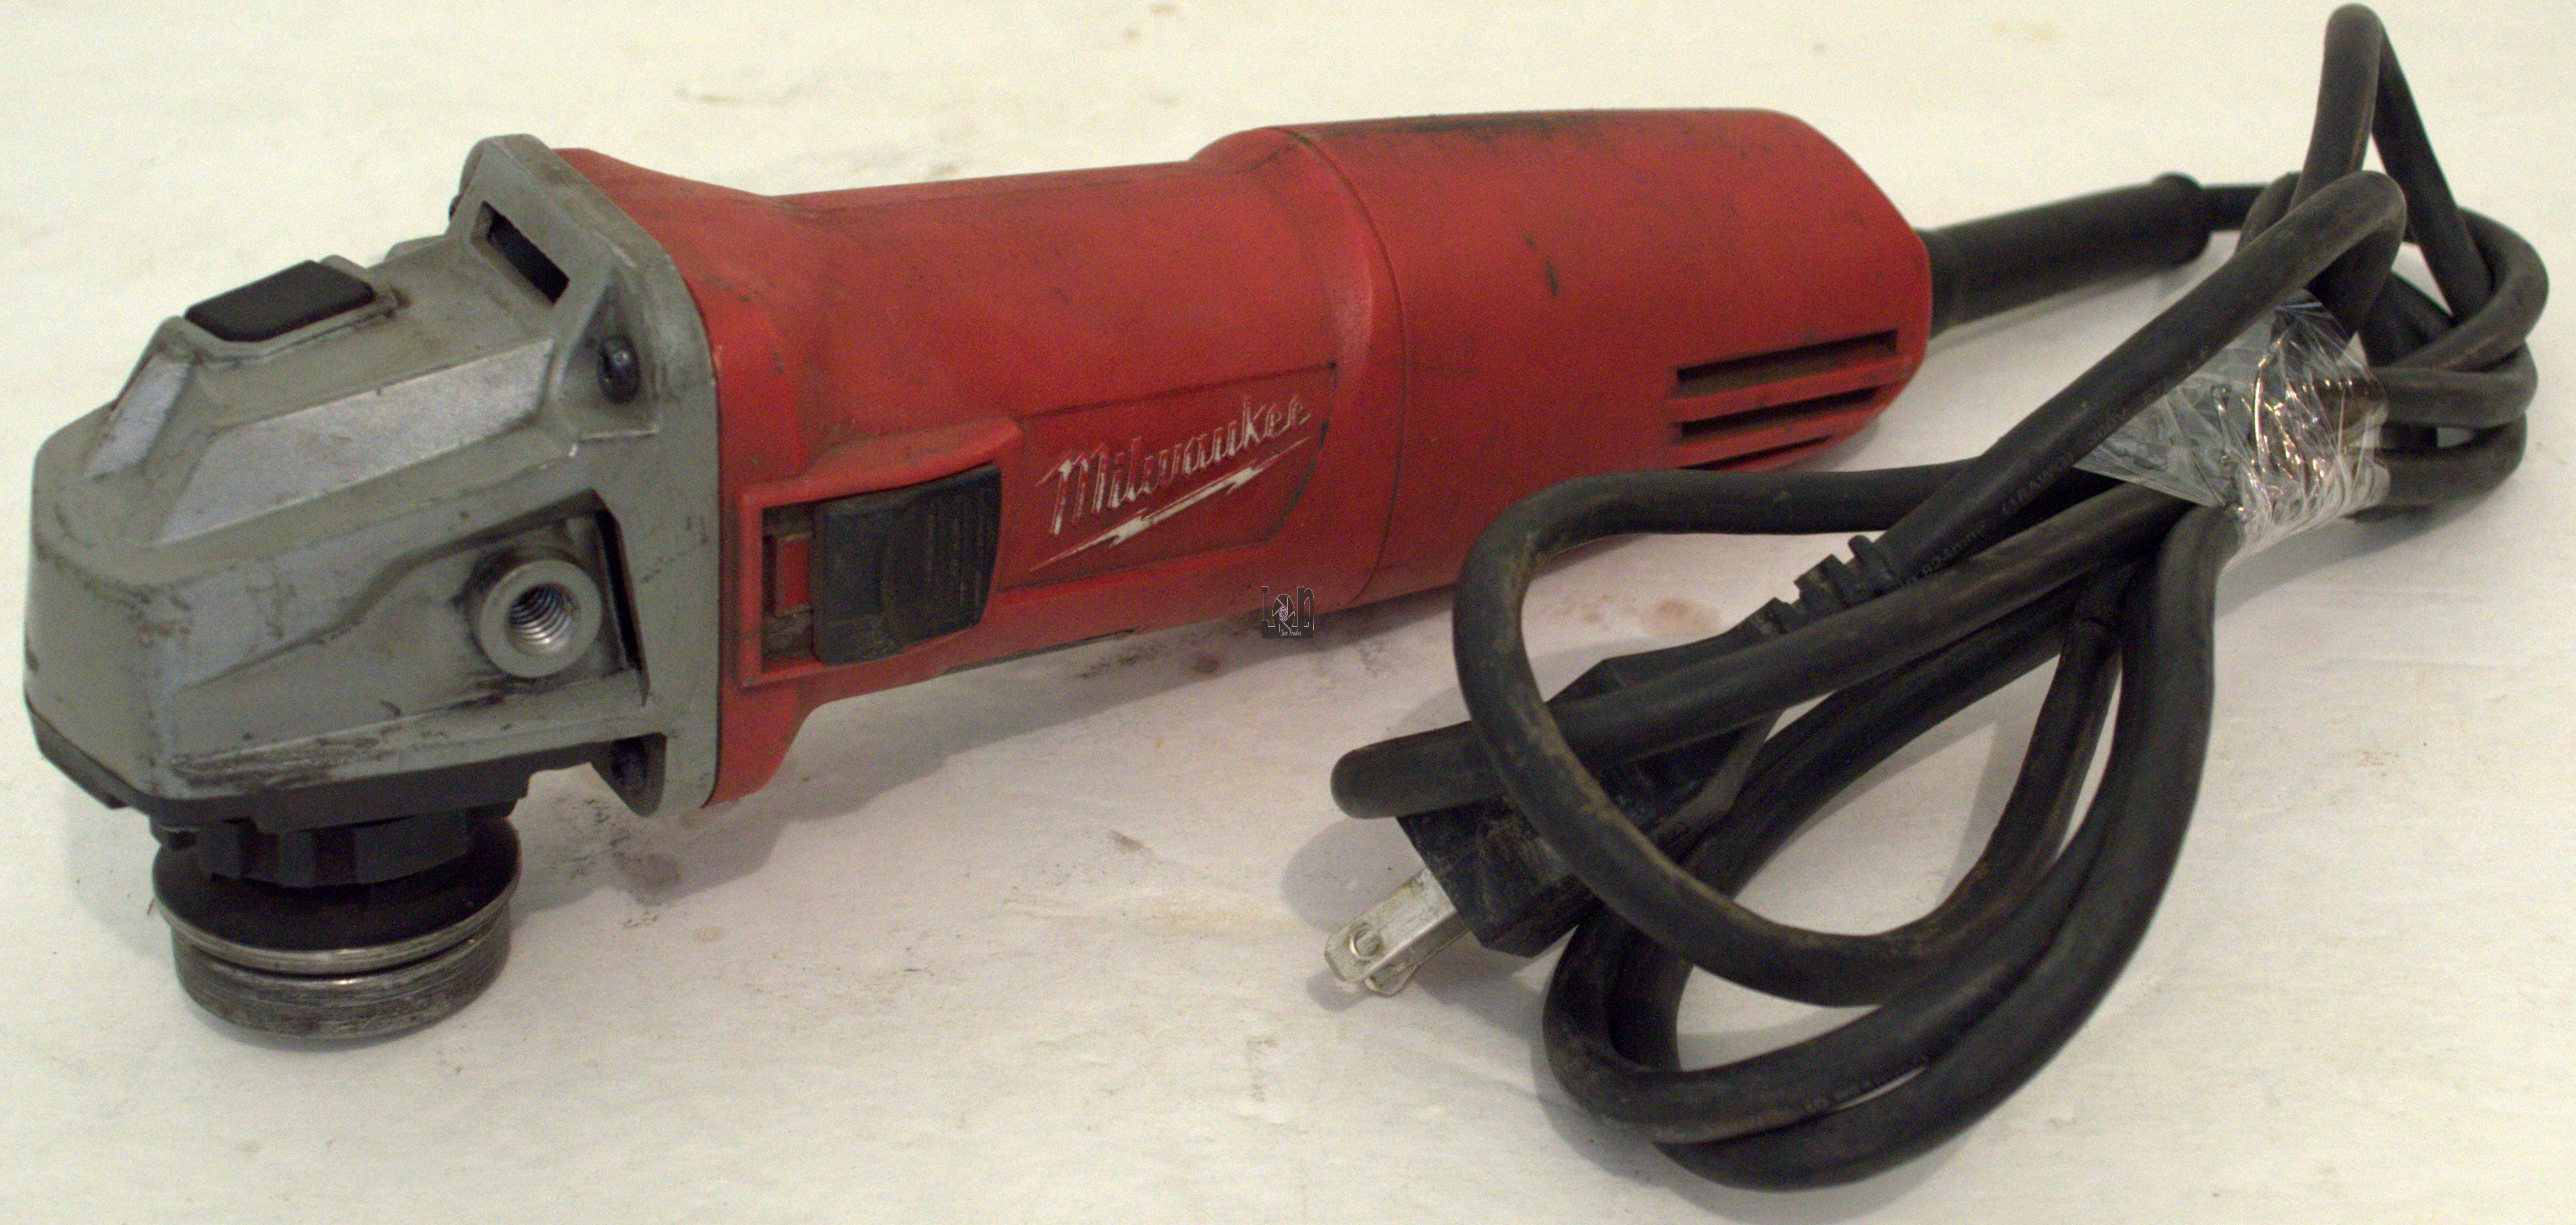 "Milwaukee Tools 6130-33 Angle Grinder 7-Amp 4-1/2"" BARE USED"